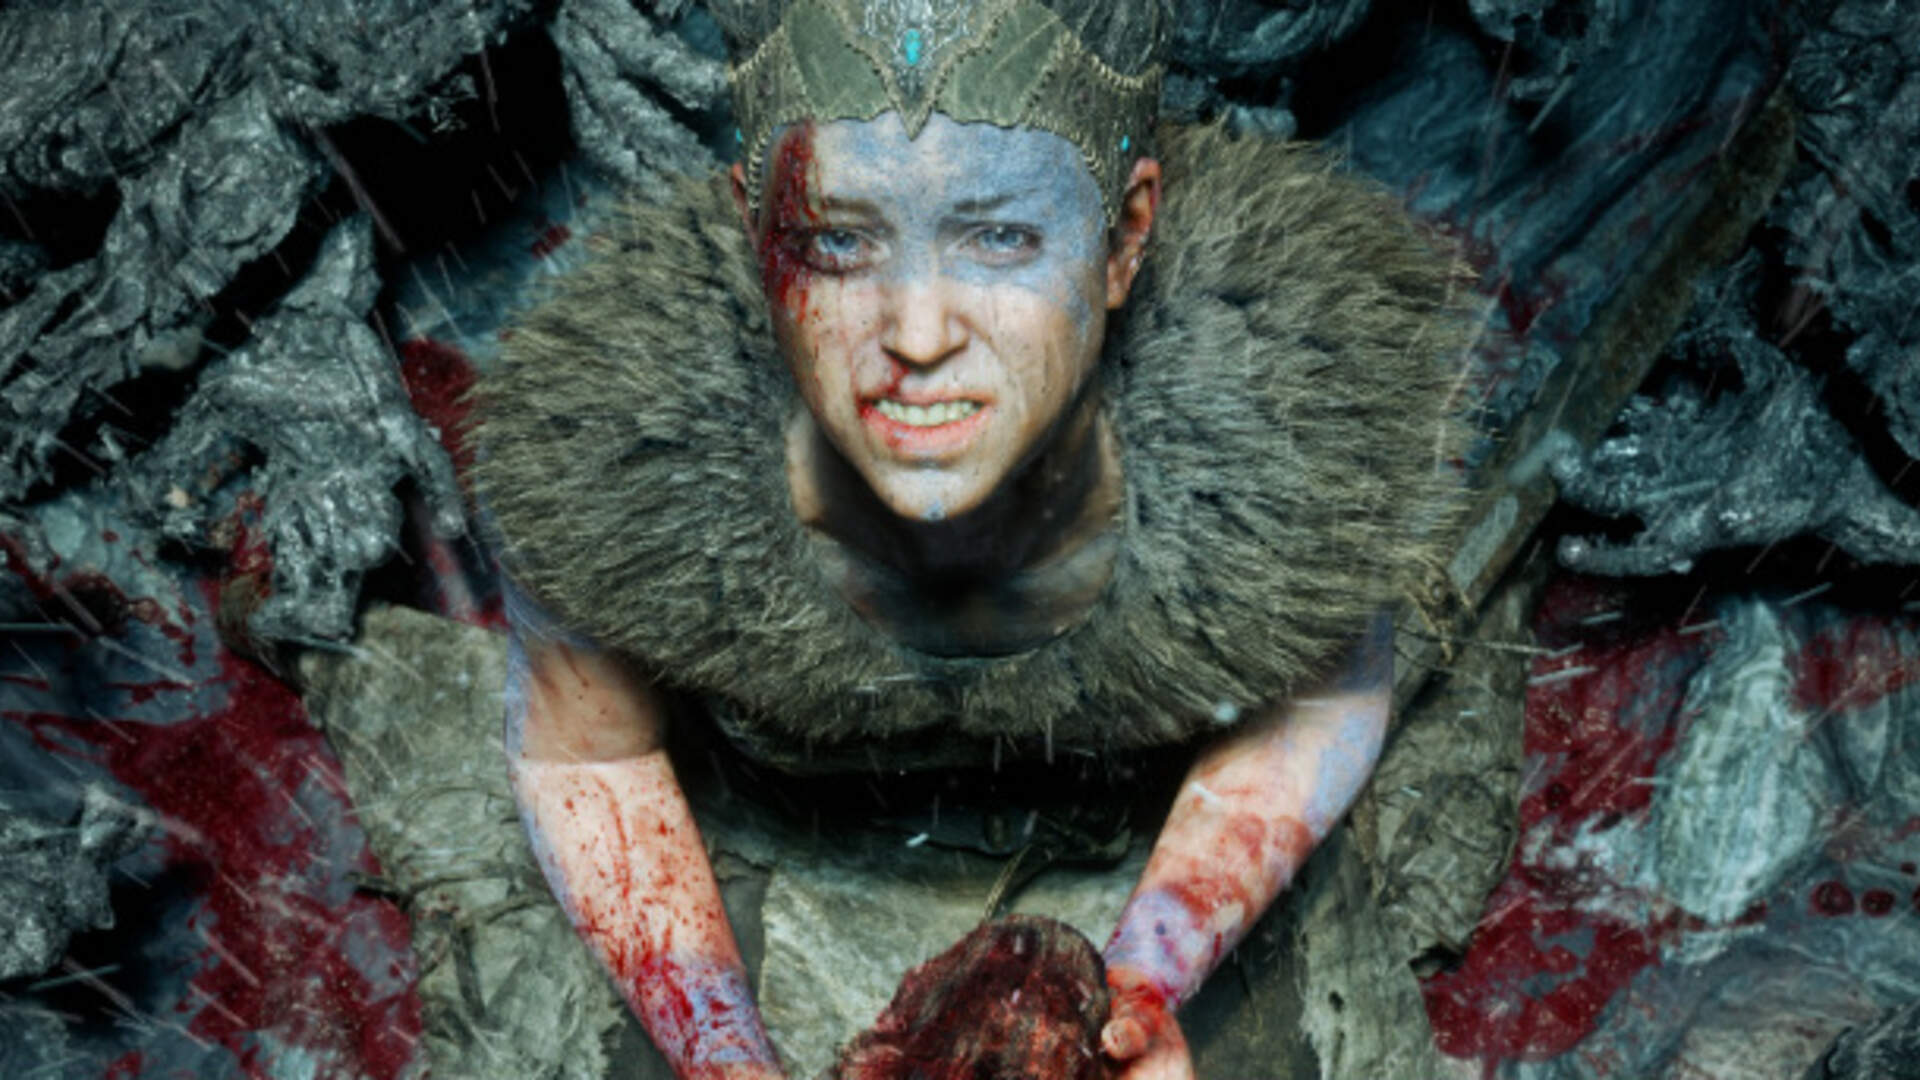 Hellblade VR Is a Free Add-On for Oculus and Vive, but PS VR Misses Out